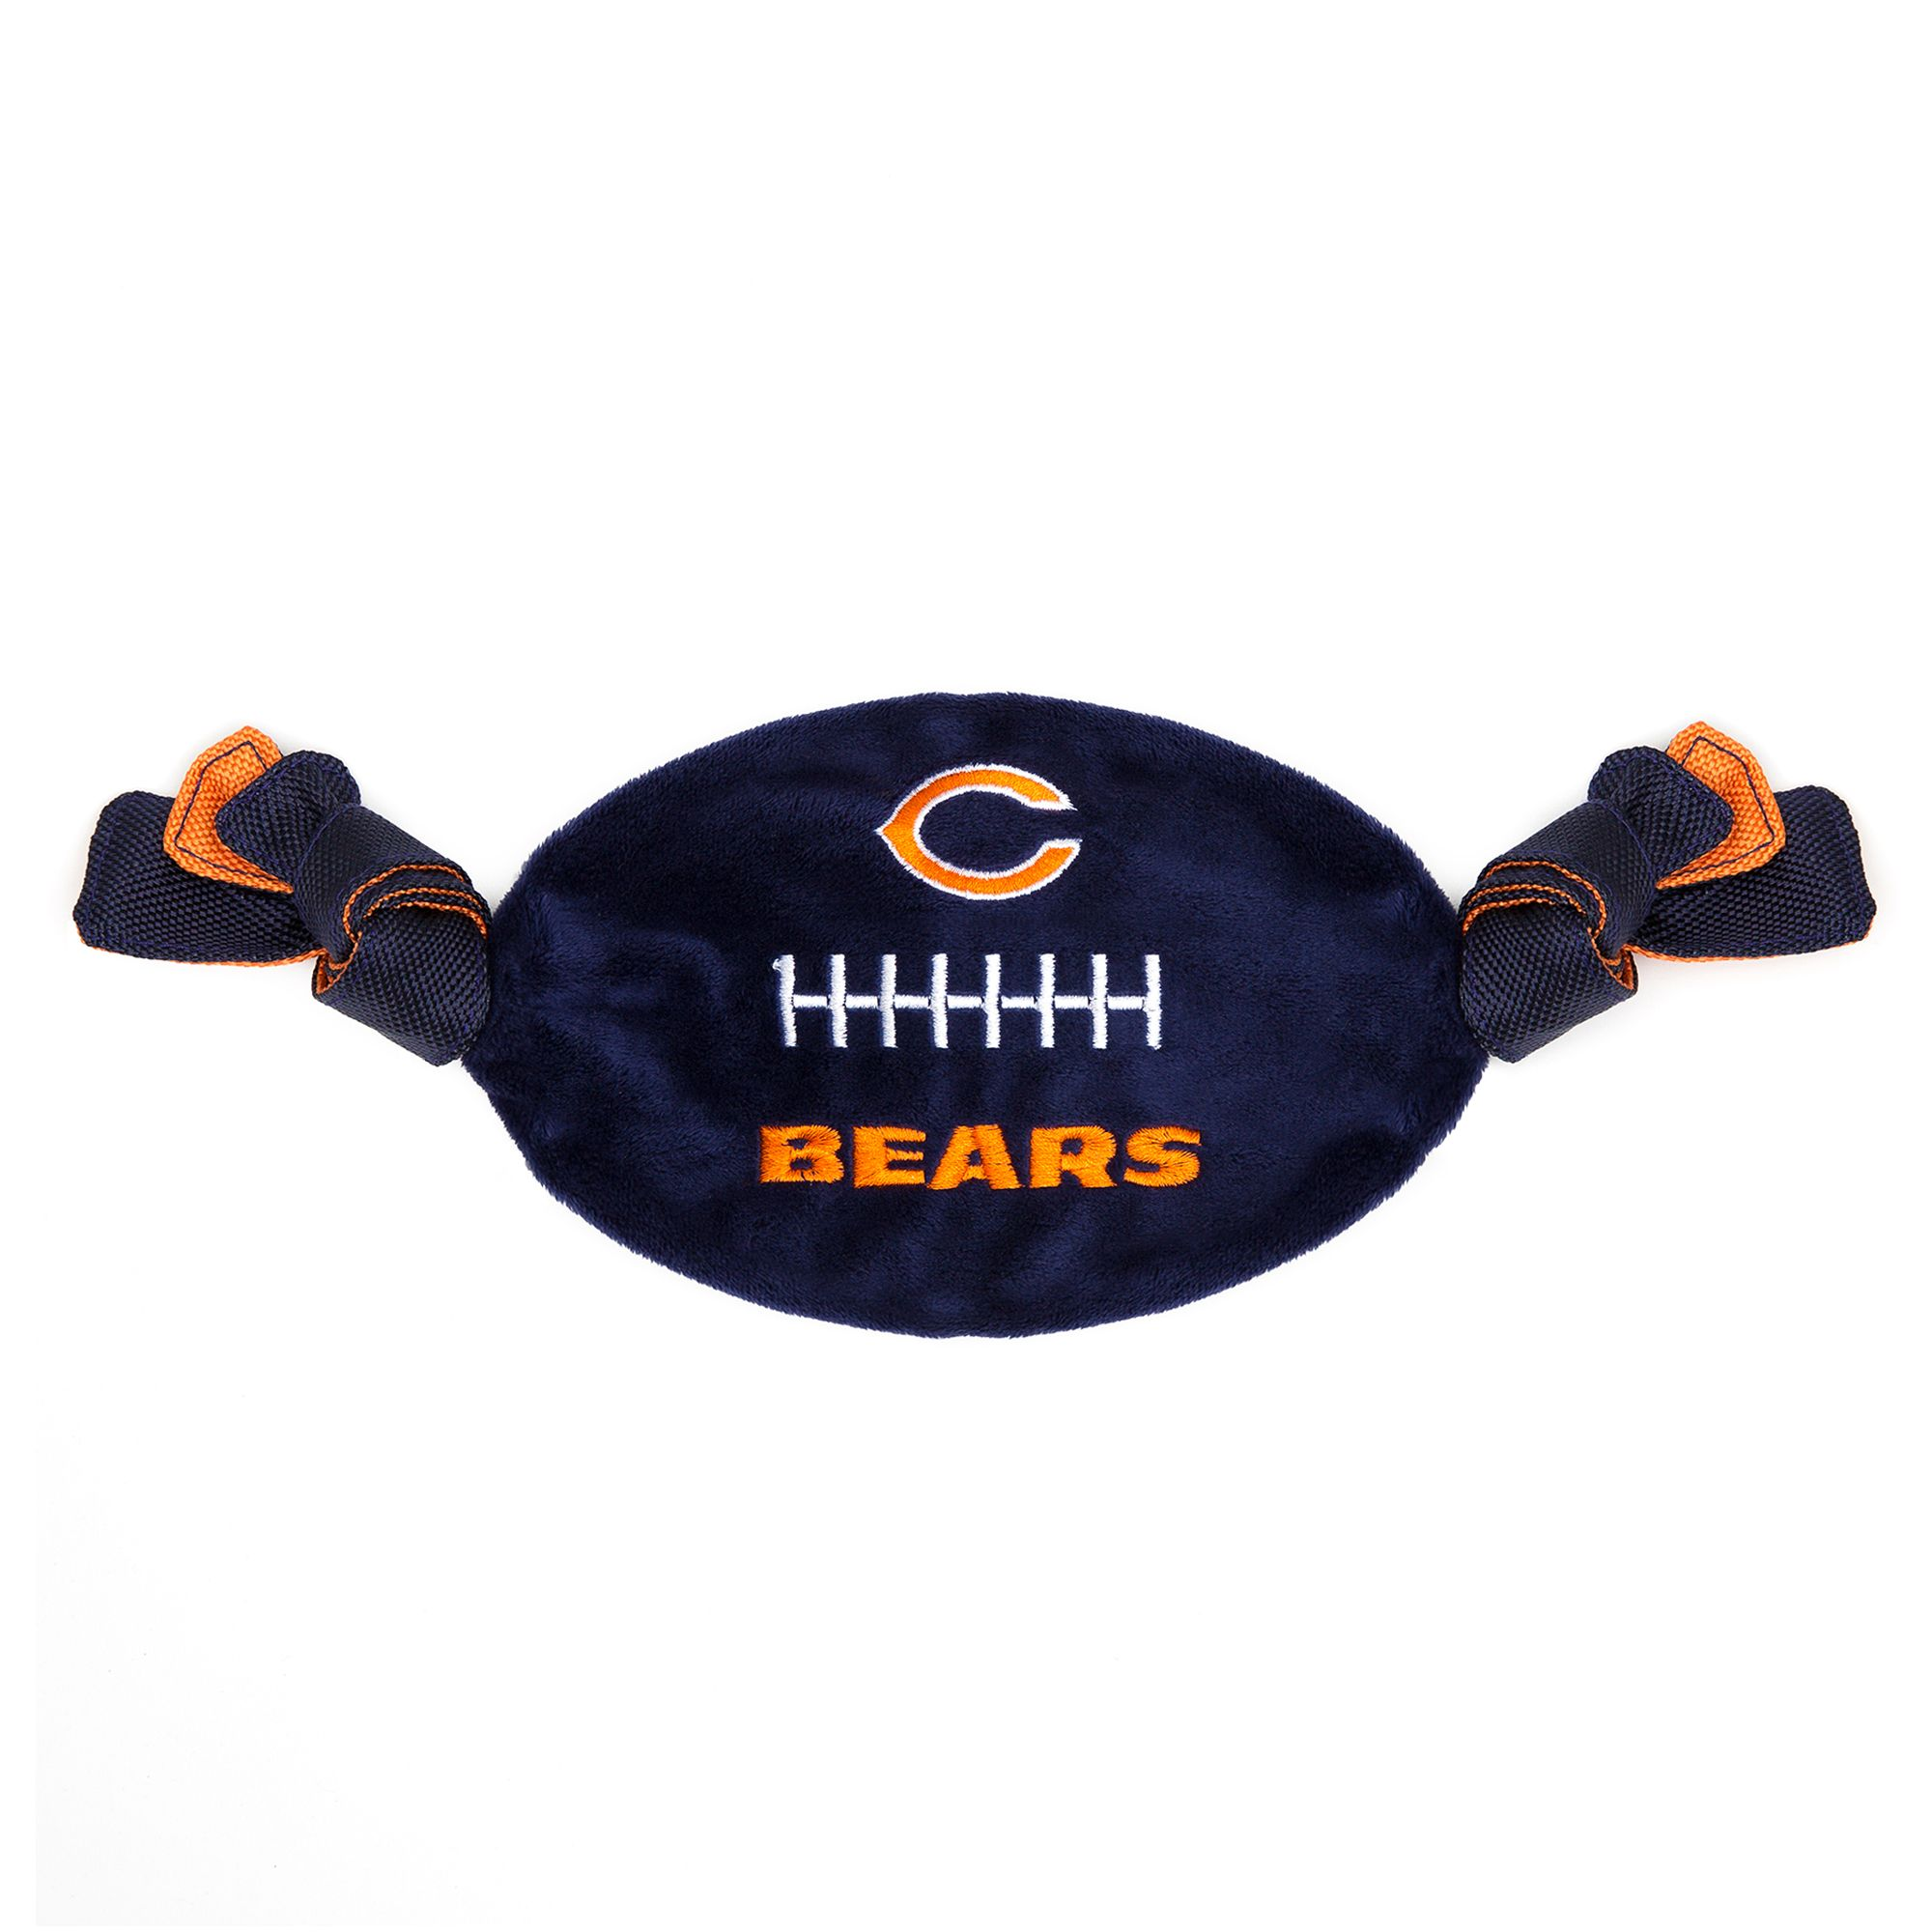 Chicago Bears NFL Flattie Crinkle Football Toy, Pets First 5259663